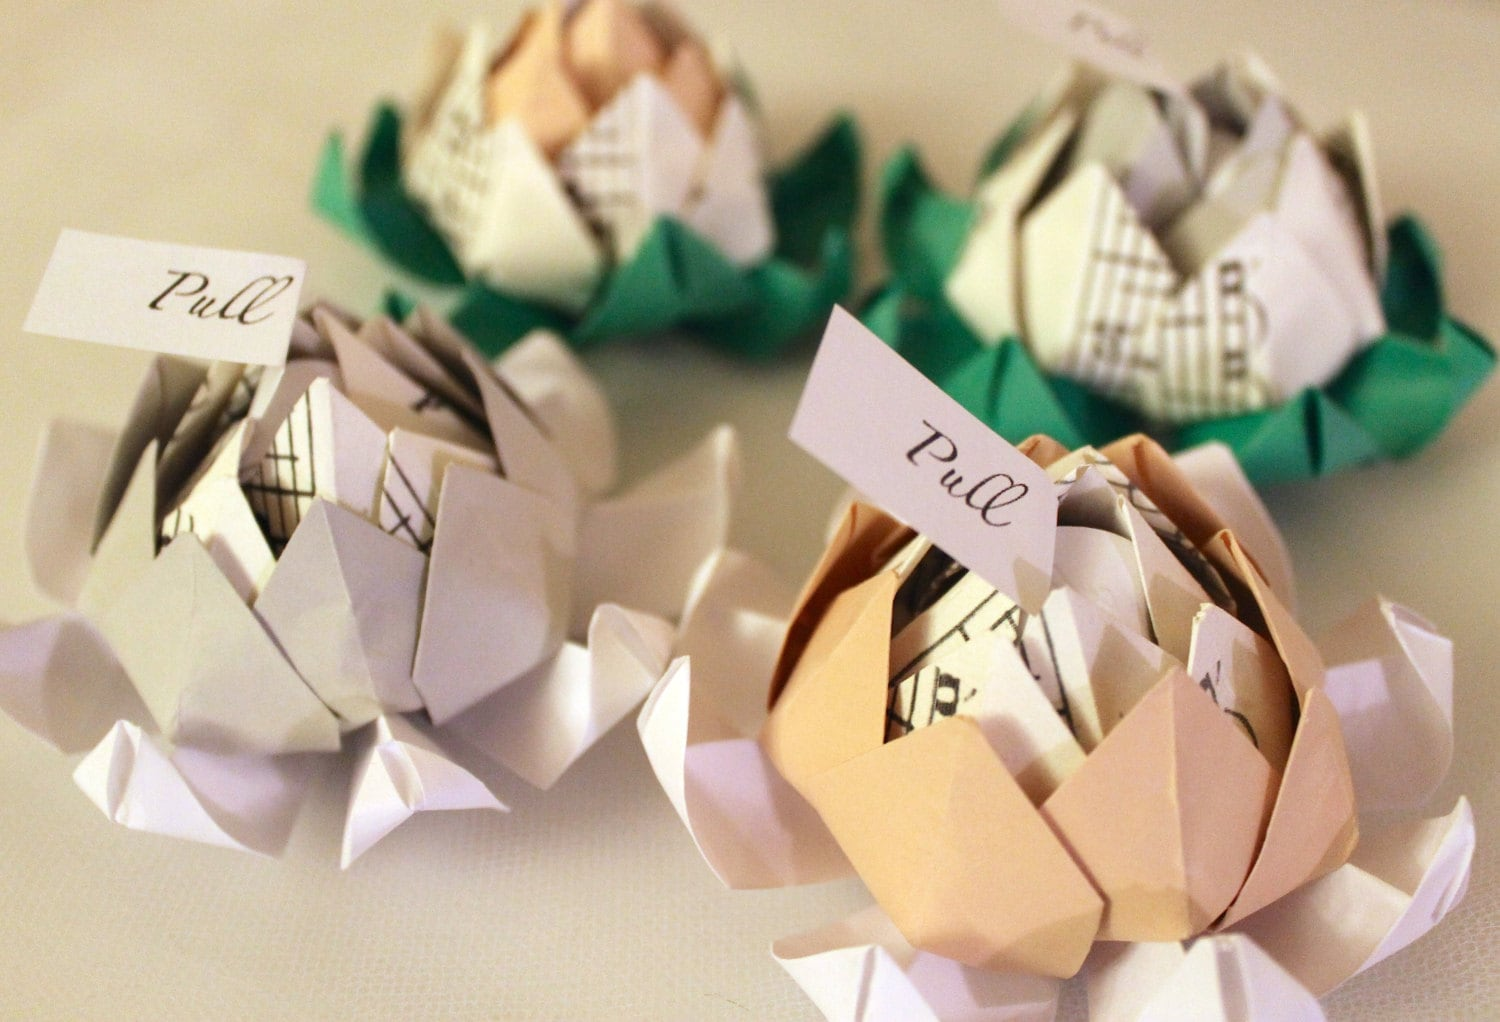 Fifty 50 Origami Lotus Blossom Wedding Favors With